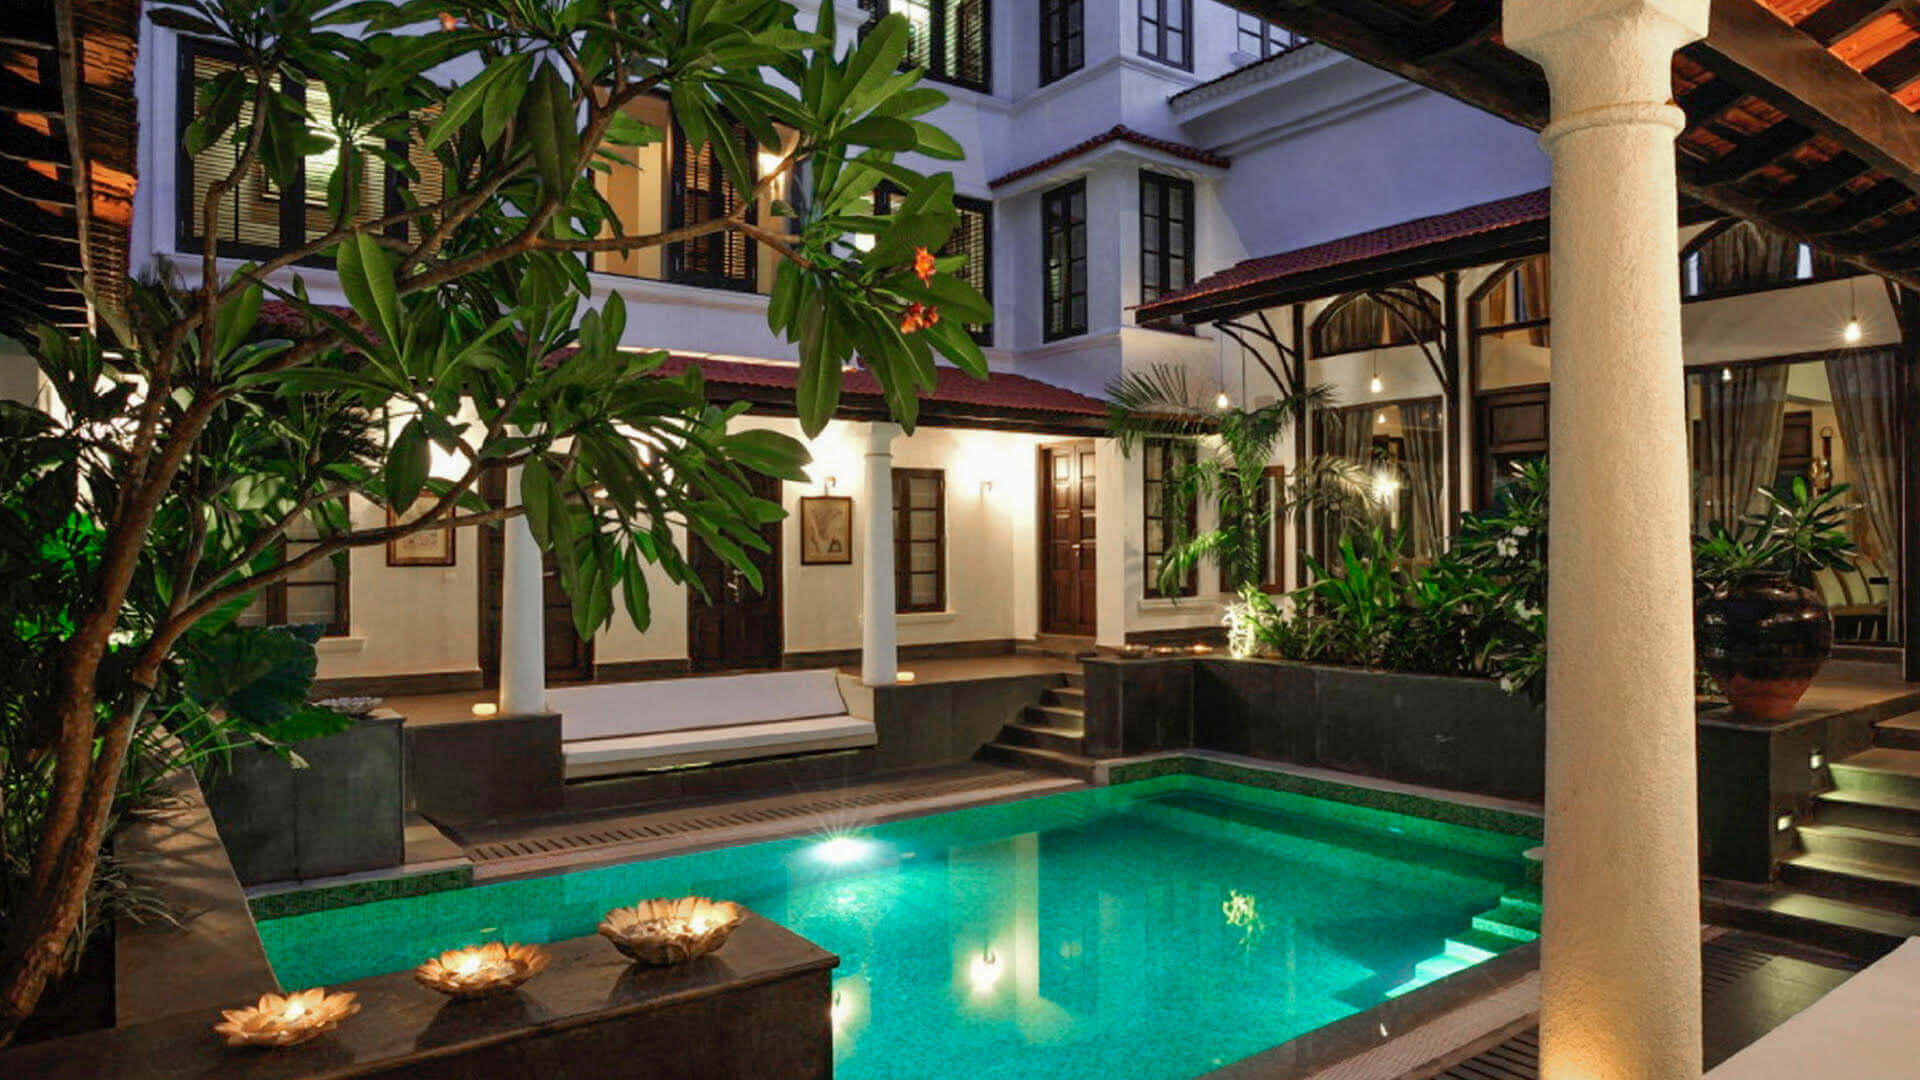 Real Estate Property for Sale in Goa